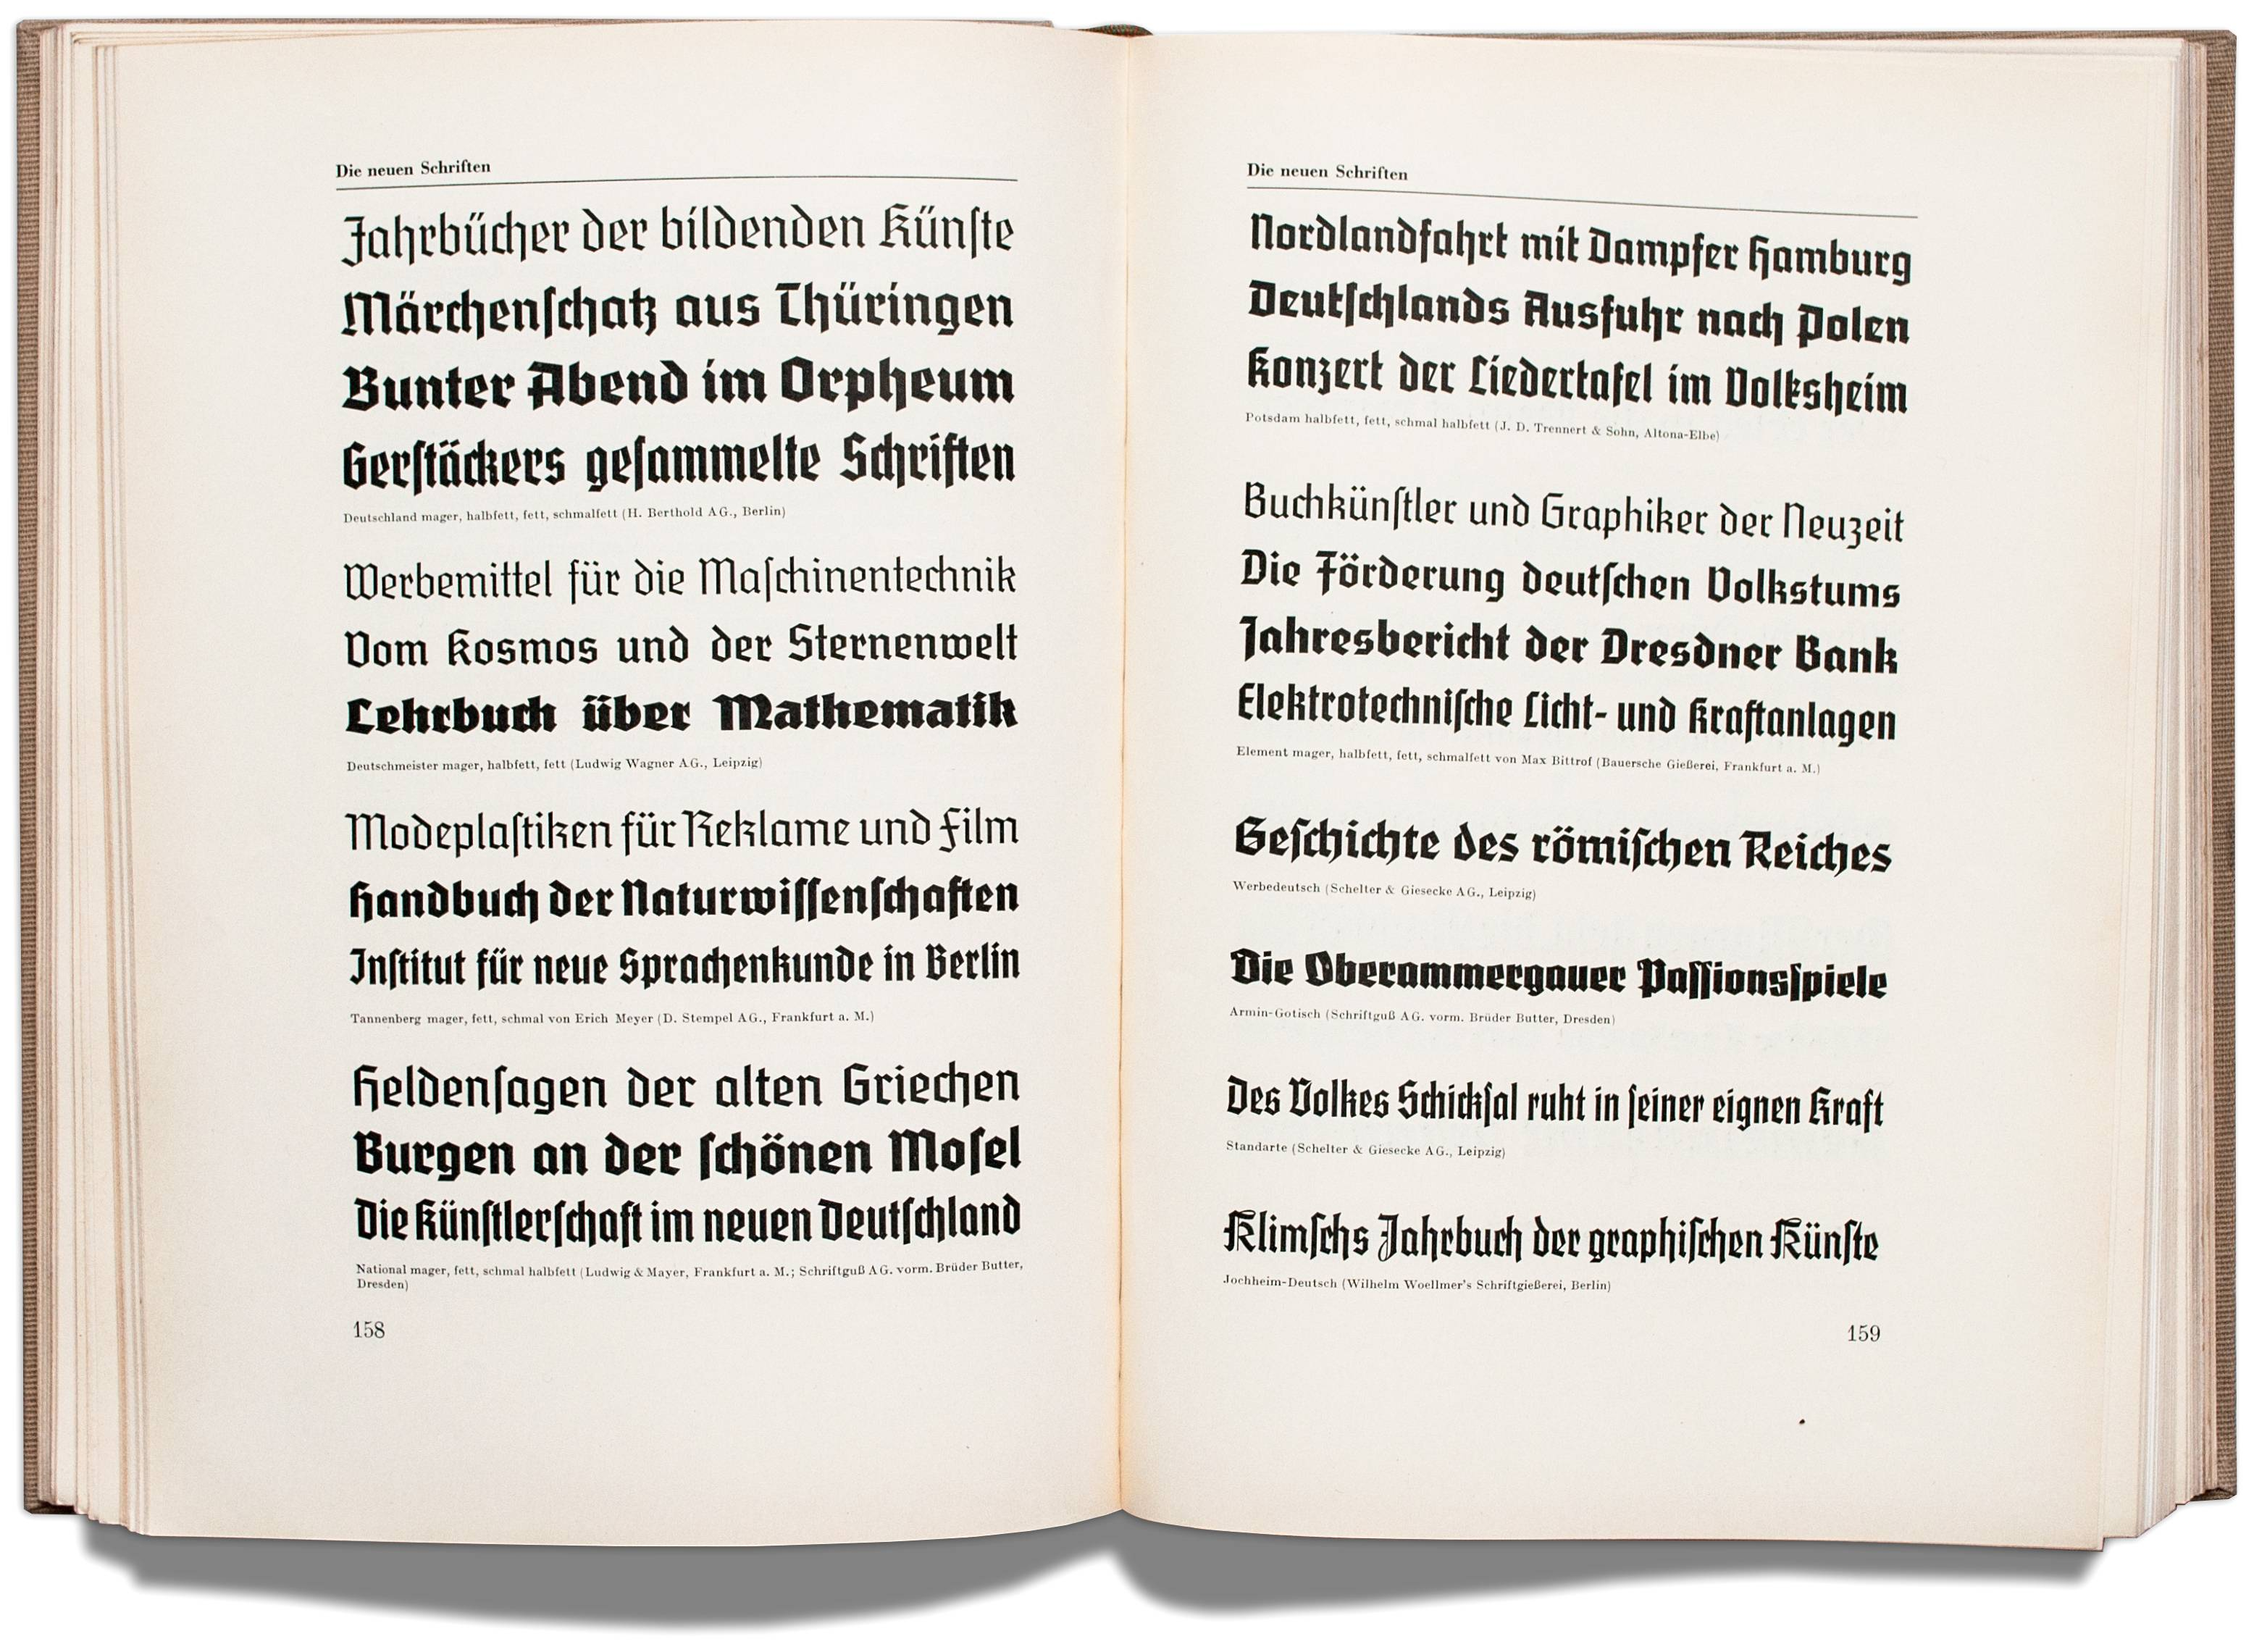 By 1935 the visual culture of the new political movement in Germany had a rapid and profound influence on the industry: a conglomeration of blackletter faces dominates the type specimen section in *Klimschs Jahrbuch* vol. 28. The typefaces on display are Deutschland (Berthold), Deutschmeister (Ludwig Wagner), Tannenberg (Stempel), National (Ludwig & Mayer and Schriftguß), Potsdam (Trennert & Sohn), Element (Bauer Type Foundry), Werbedeutsch (Schelter & Giesecke), Armin-Gotisch (Schriftguß), Standarte (Schelter & Giesecke) and Jochheim-Deutsch (Wilhelm Woellmer)—all major foundries offered types in favor of the new regime. (With kind permission from the collection of Erik Spiekermann.)